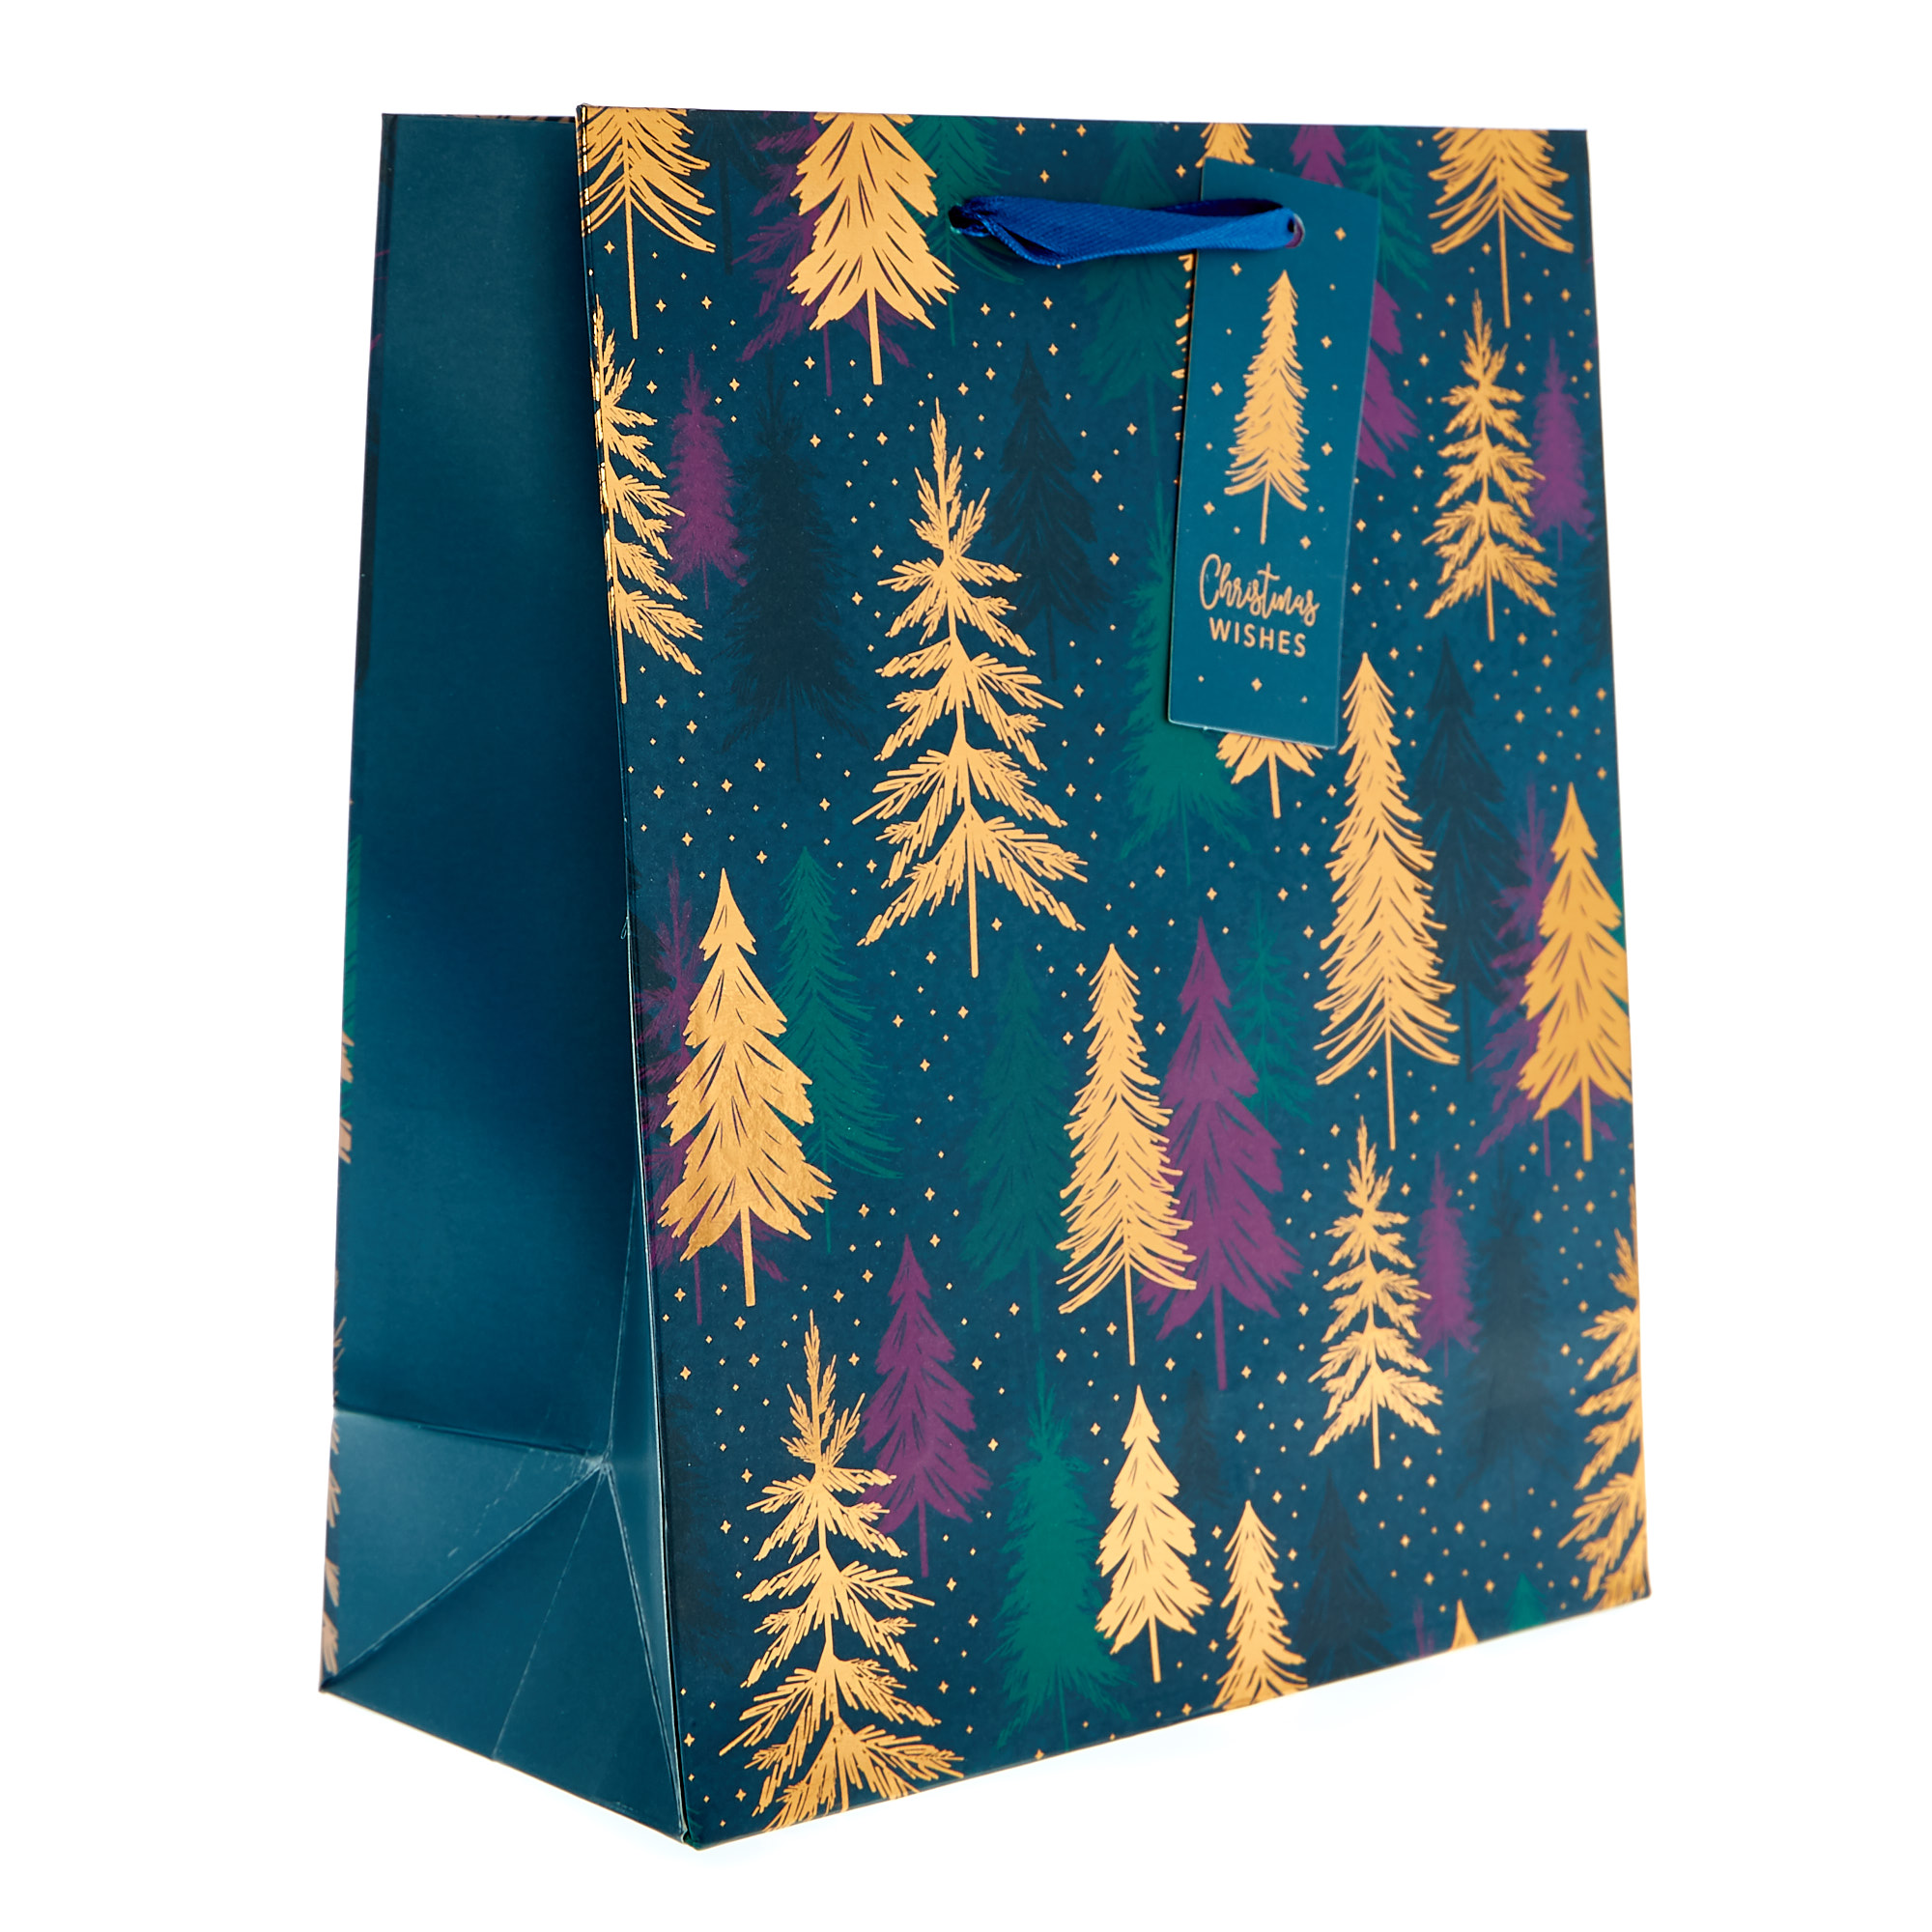 Small Portrait Festive Trees Christmas Gift Bag